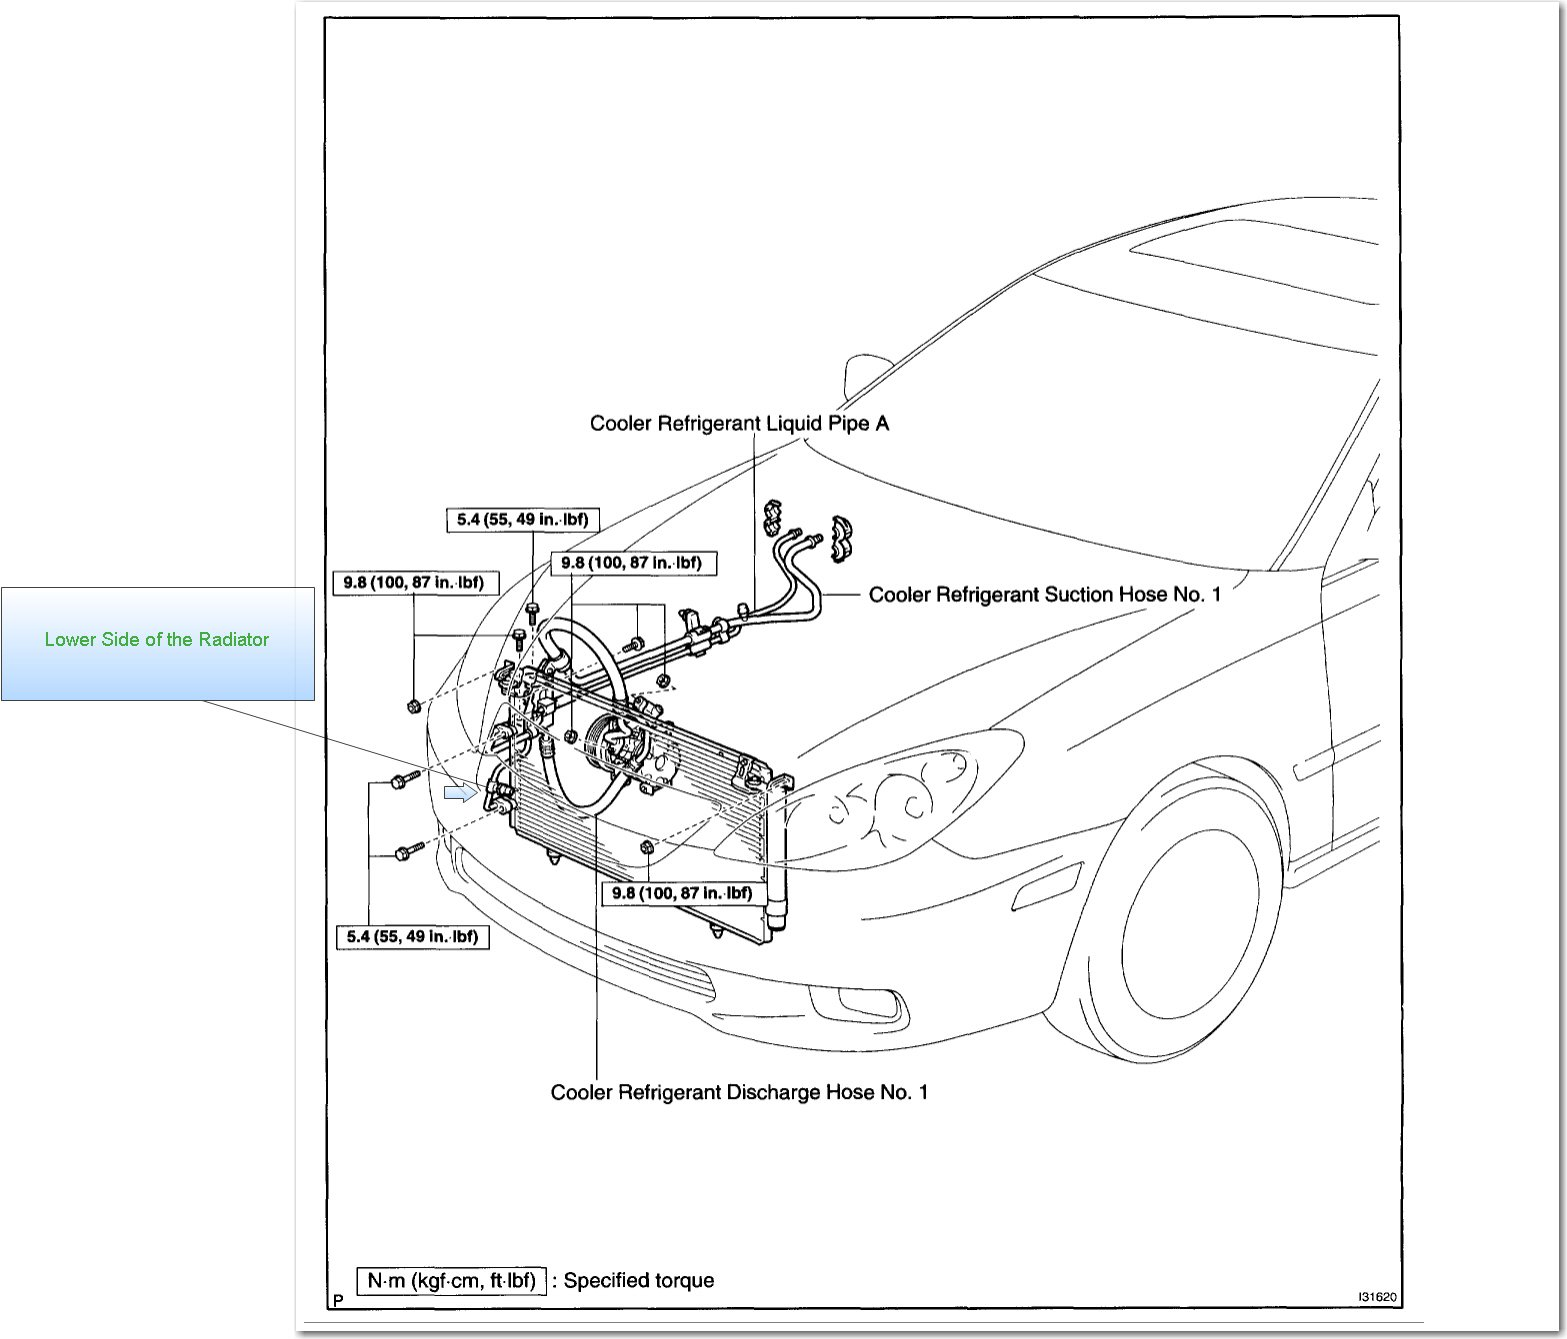 1999 Lexus Es300 Ac Diagram Wiring Electricity Basics 101 For Gs300 Auto Electrical U2022 Rh Wiringdiagramcenter Today Rx300